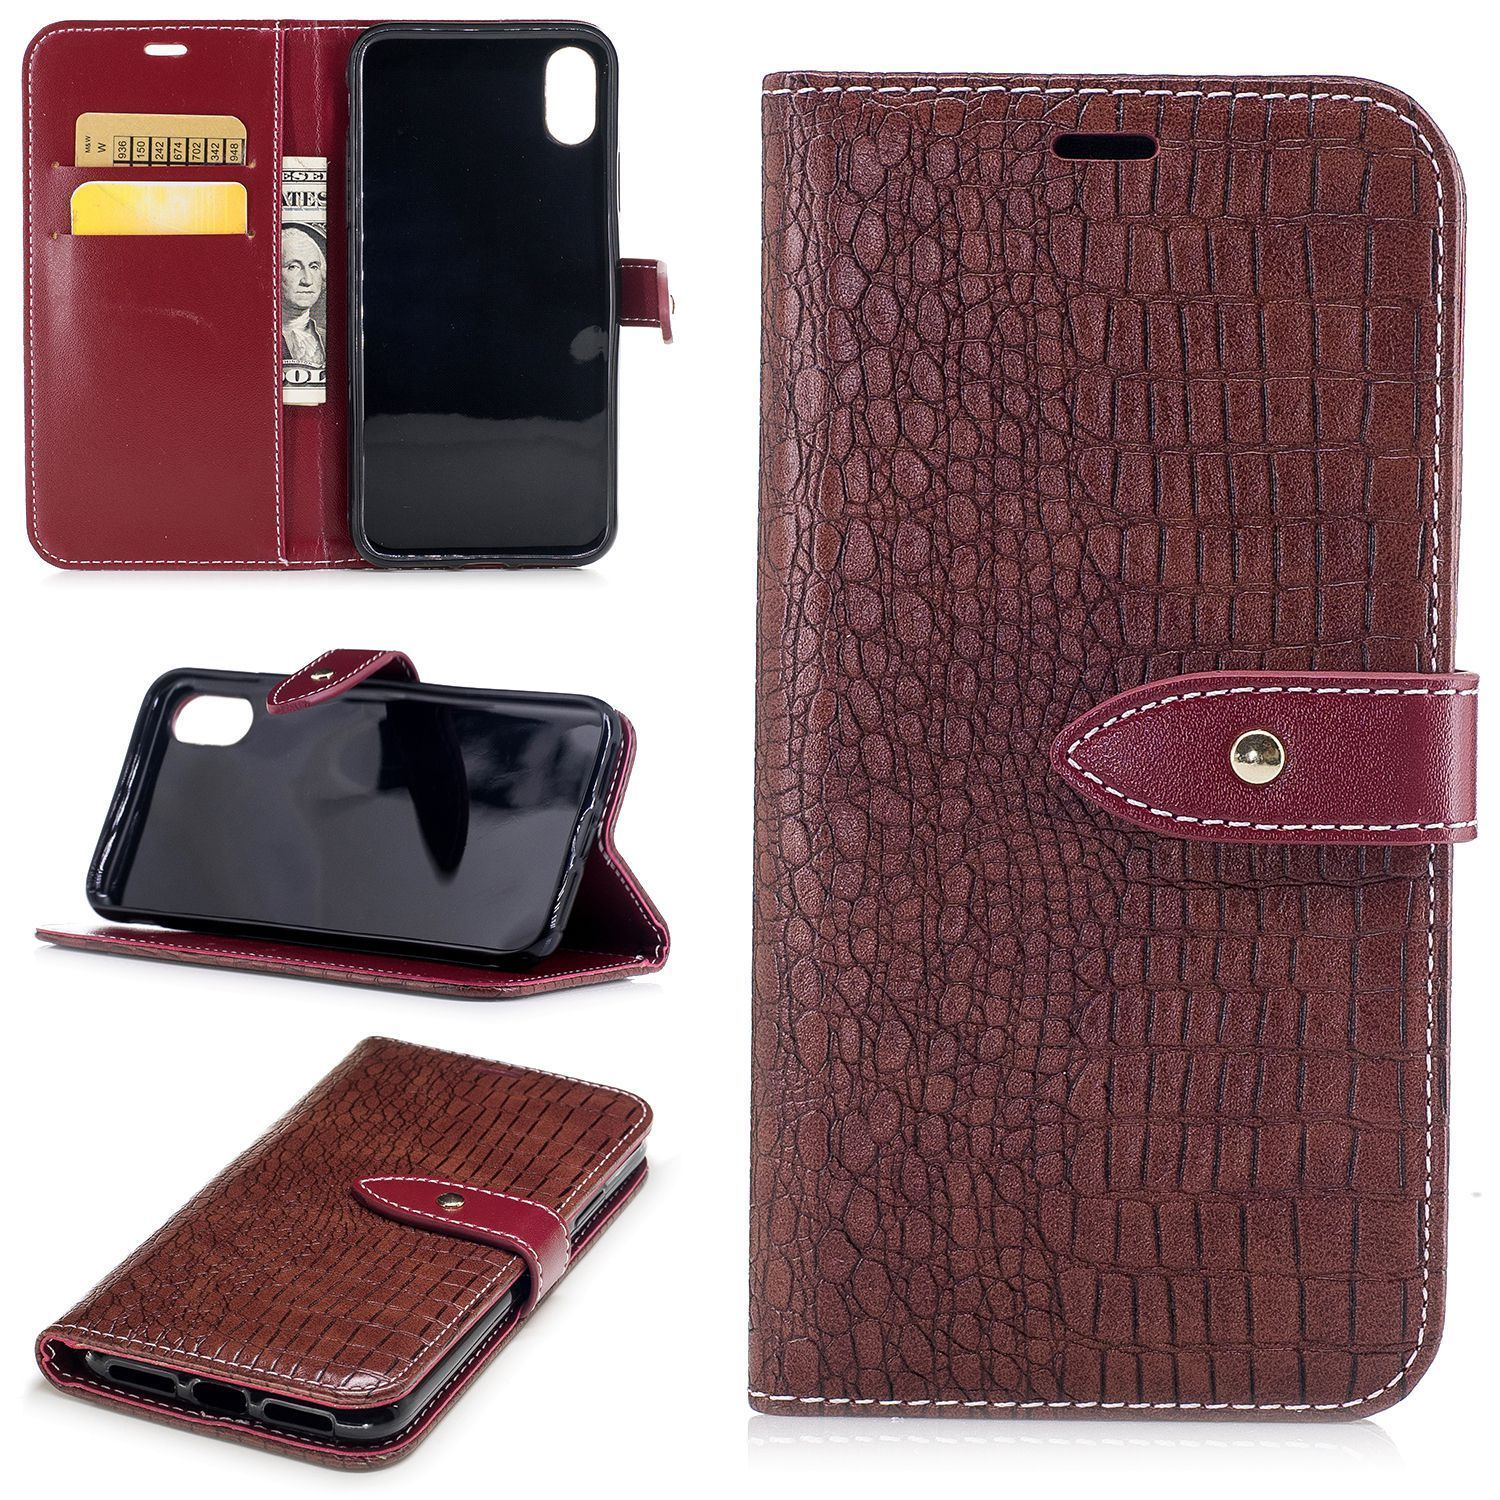 649f262763ee Flip Crocodile Pattern Pu Wallet Leather Skin Case Cover For Iphone6 ...